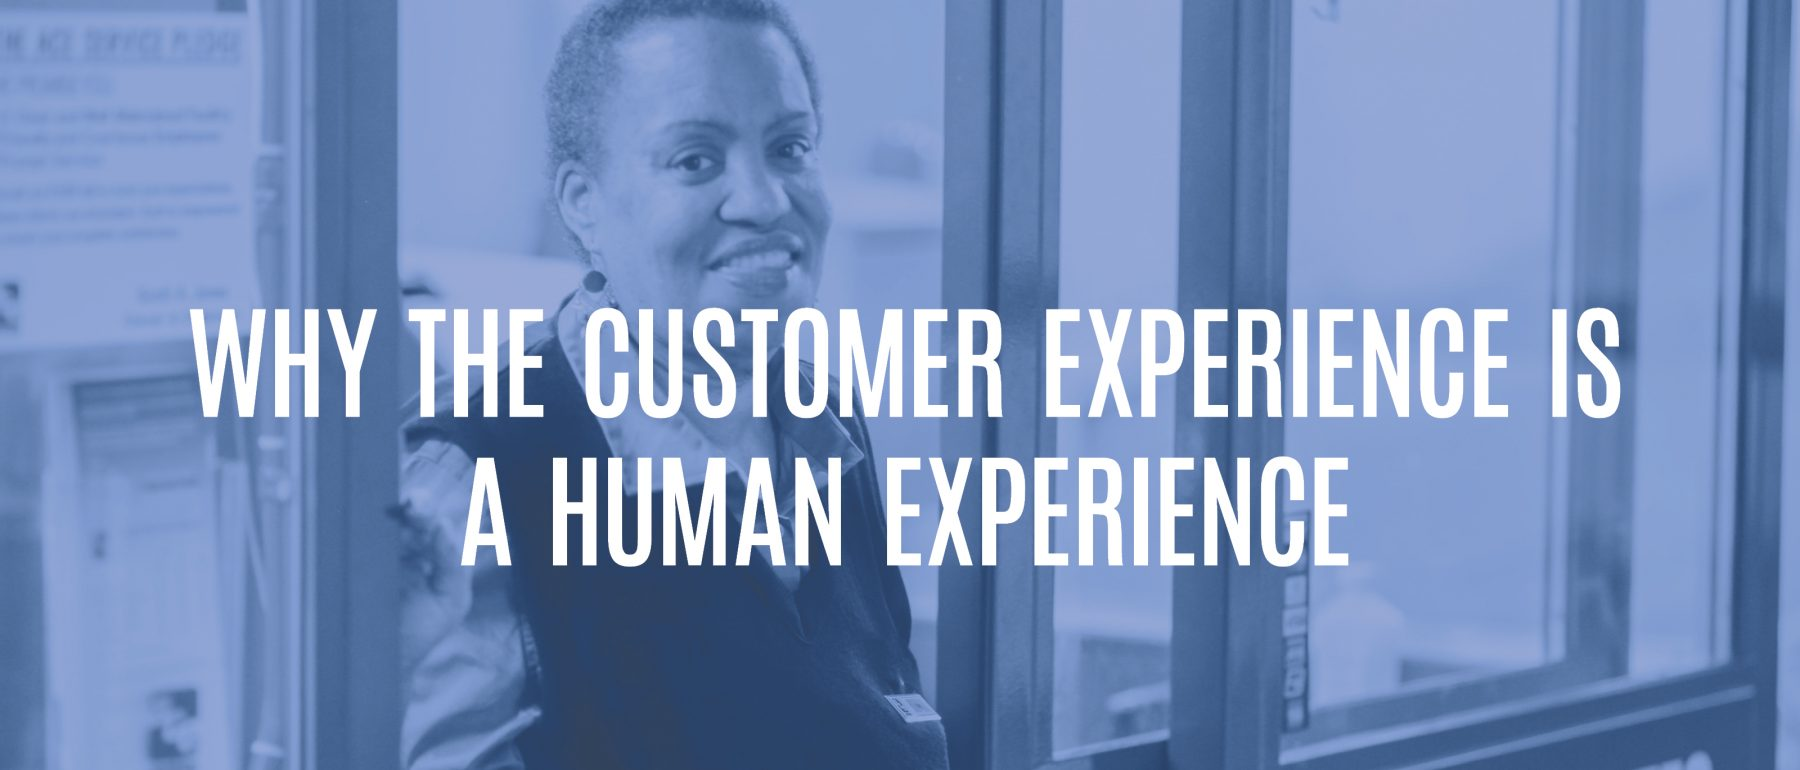 Why the Customer Experience is a Human Experience